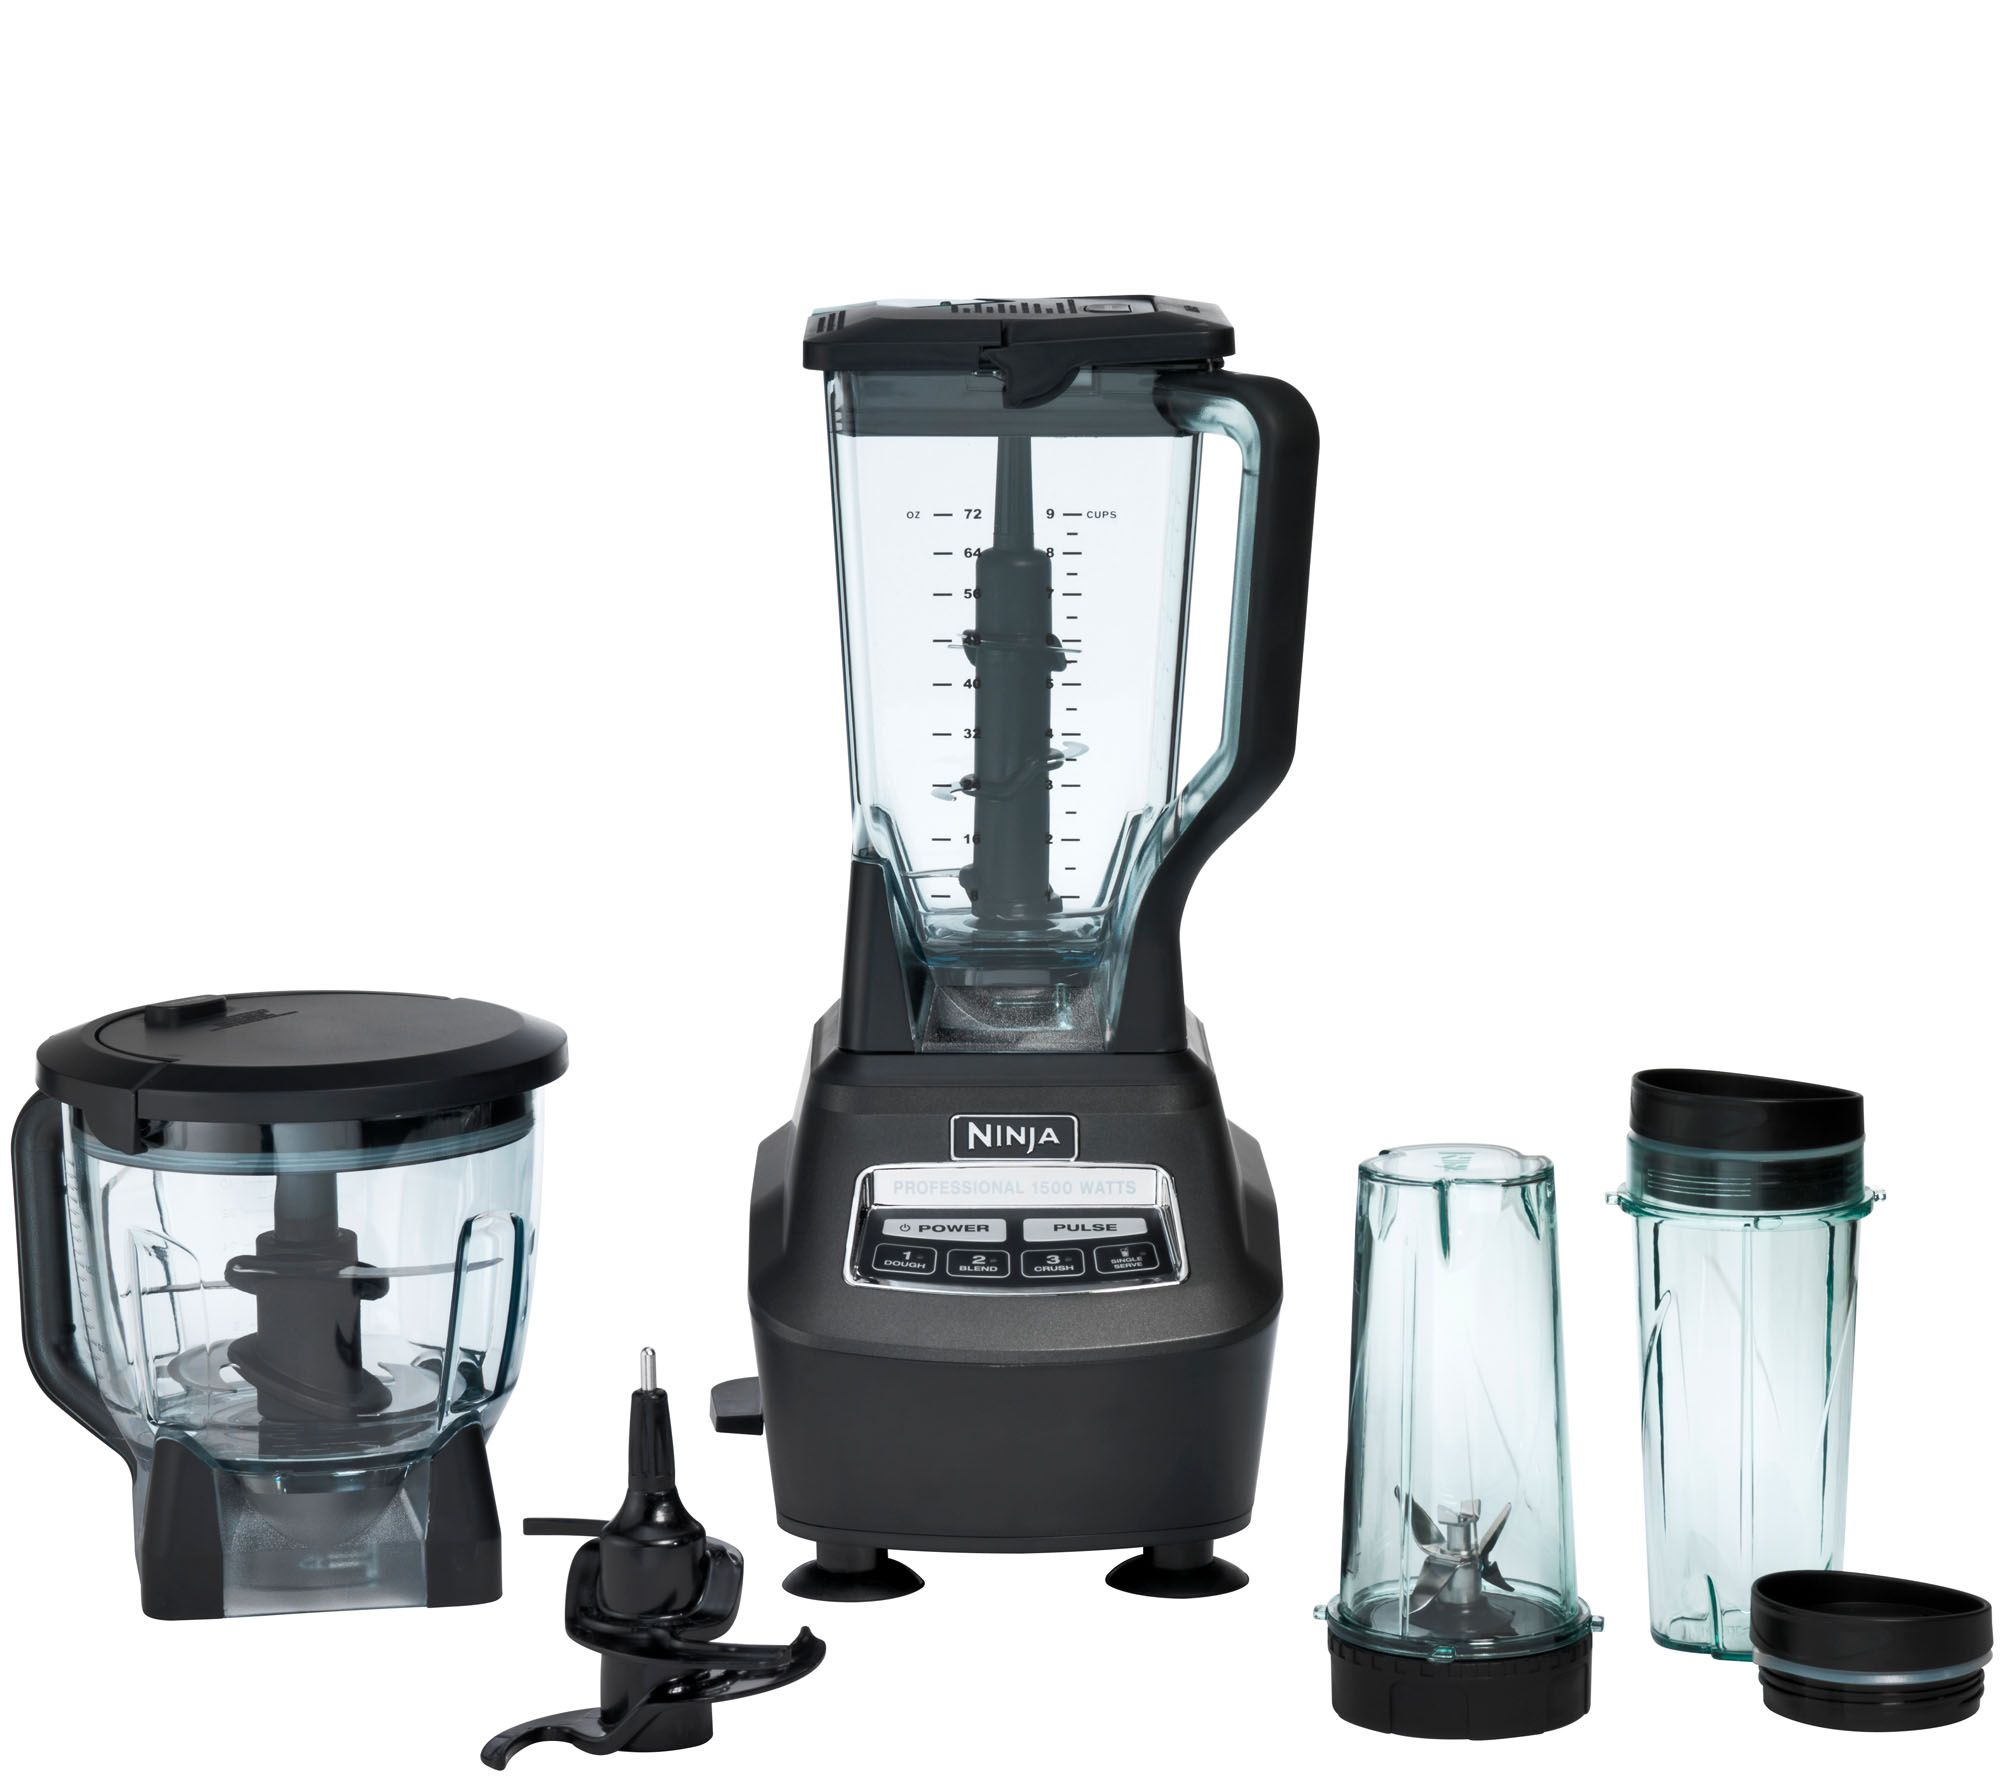 Ninja Mega Kitchen System Table Top Blender — QVC.com